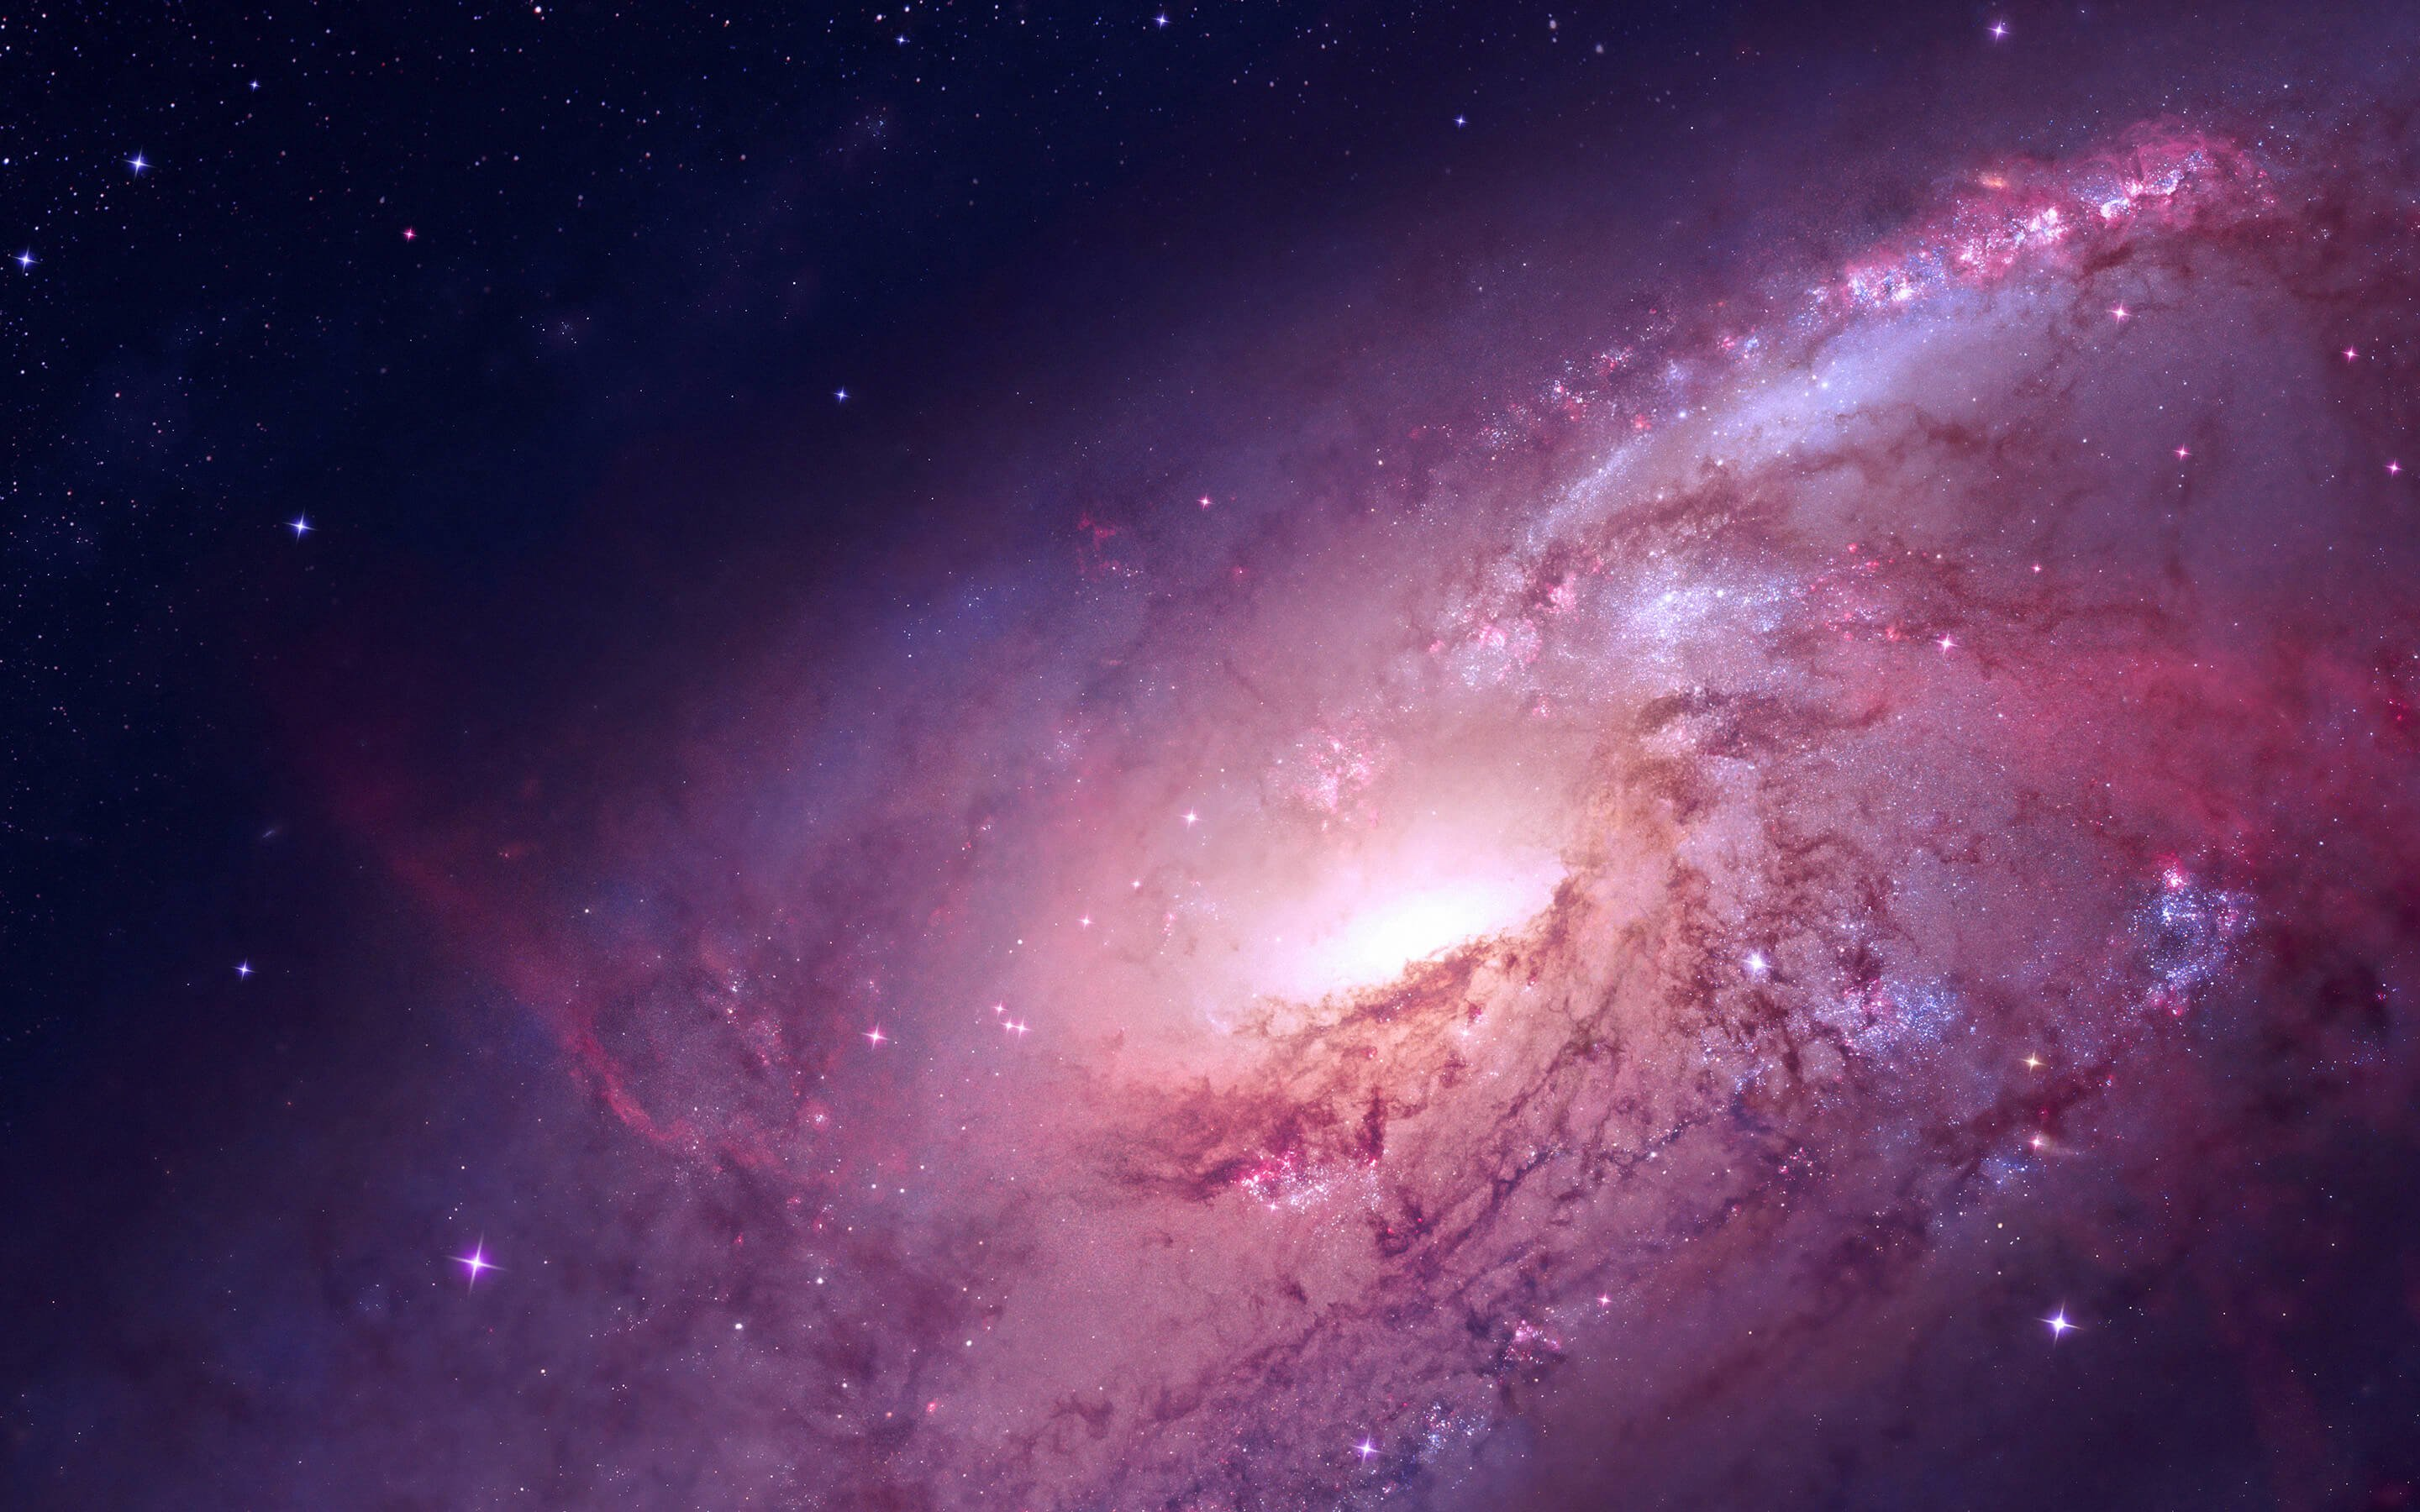 Galaxy M106 Wallpaper for Desktop 2880x1800